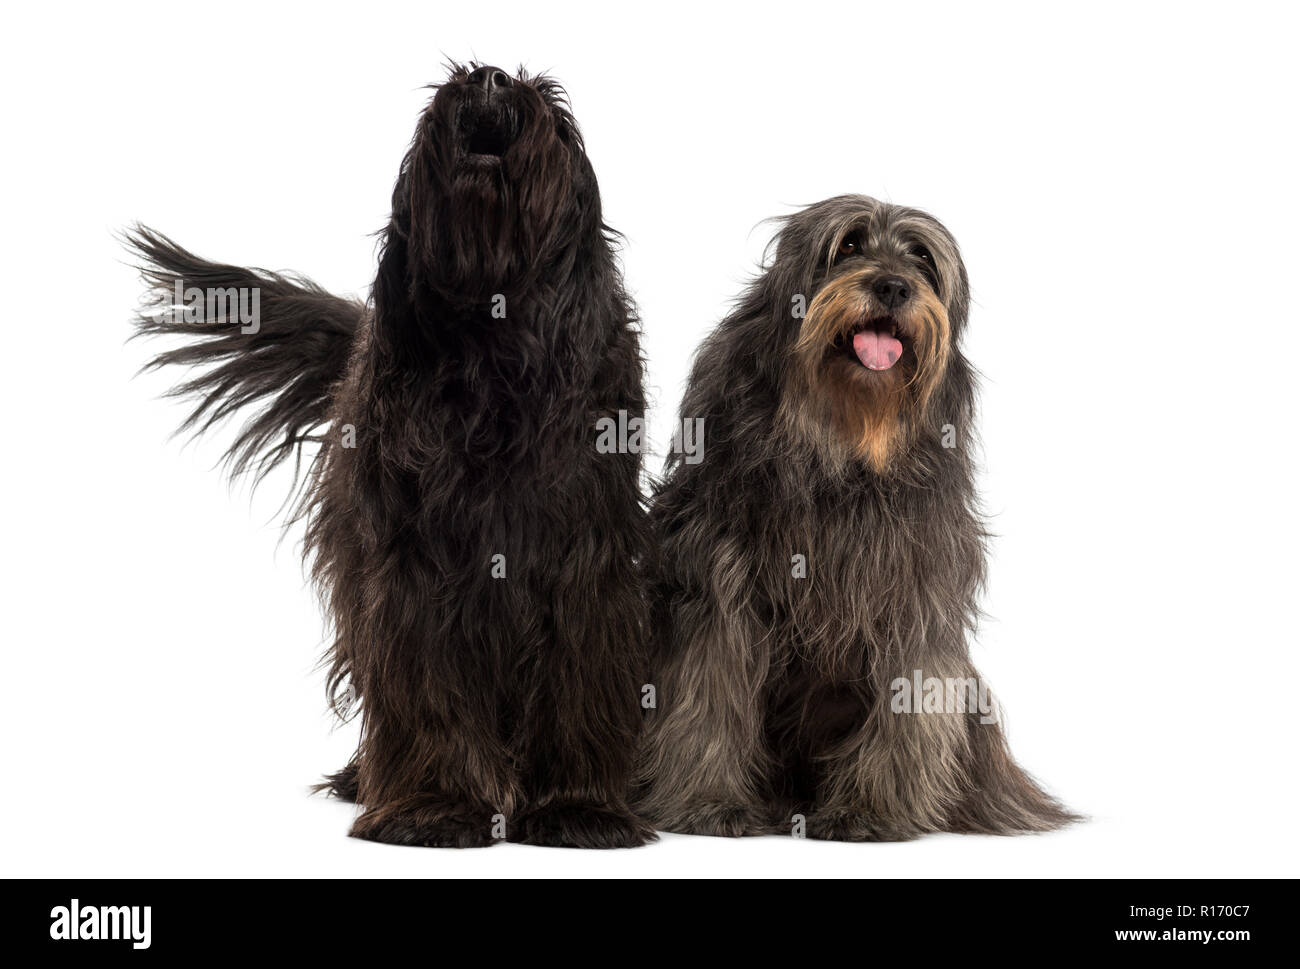 Couple of Catalan sheepdogs together barking and panting, isolated on white - Stock Image